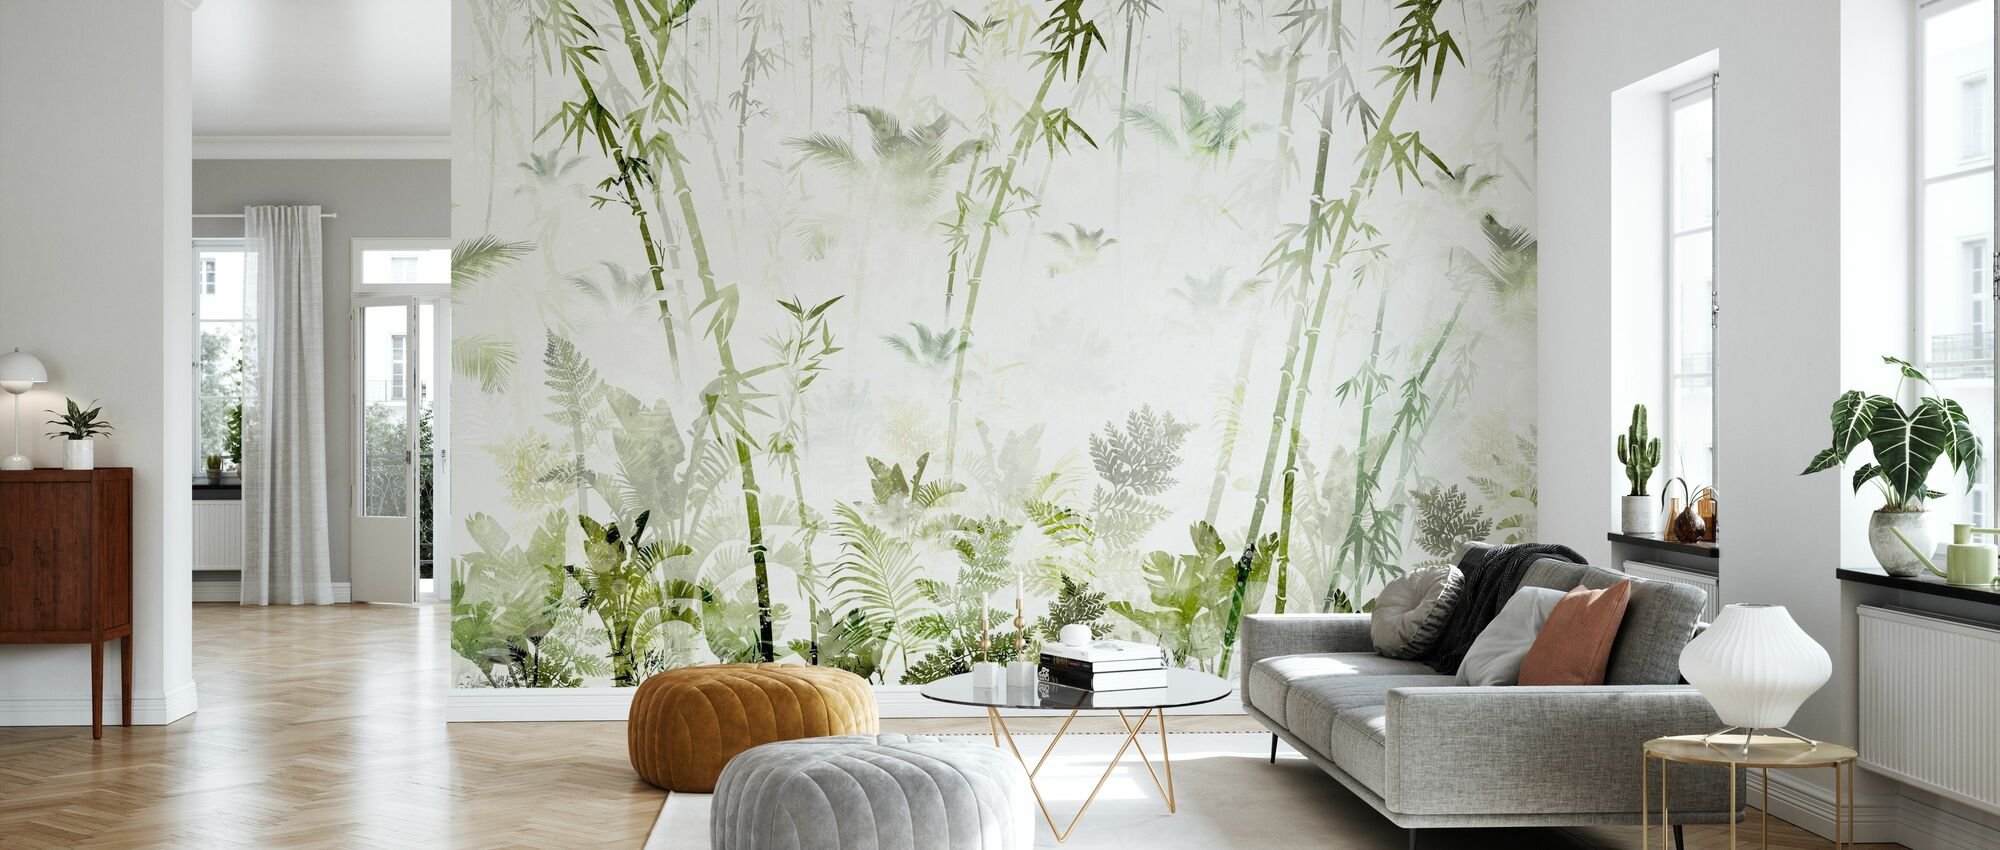 Bamboo Greenery - Wallpaper - Living Room